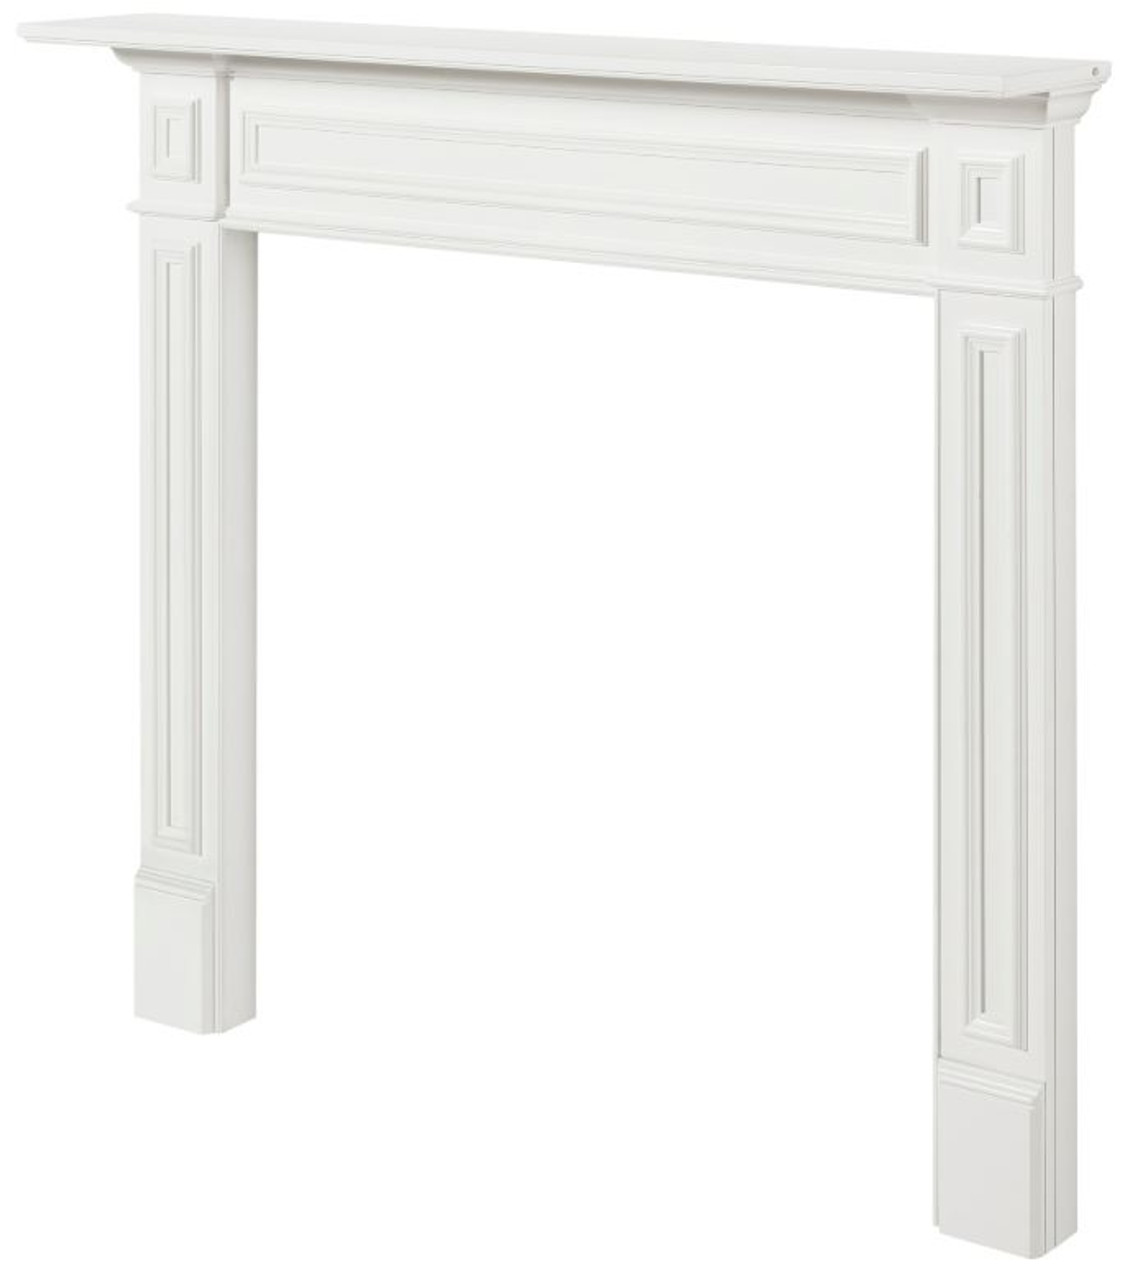 The Mike Fireplace Mantel Surround